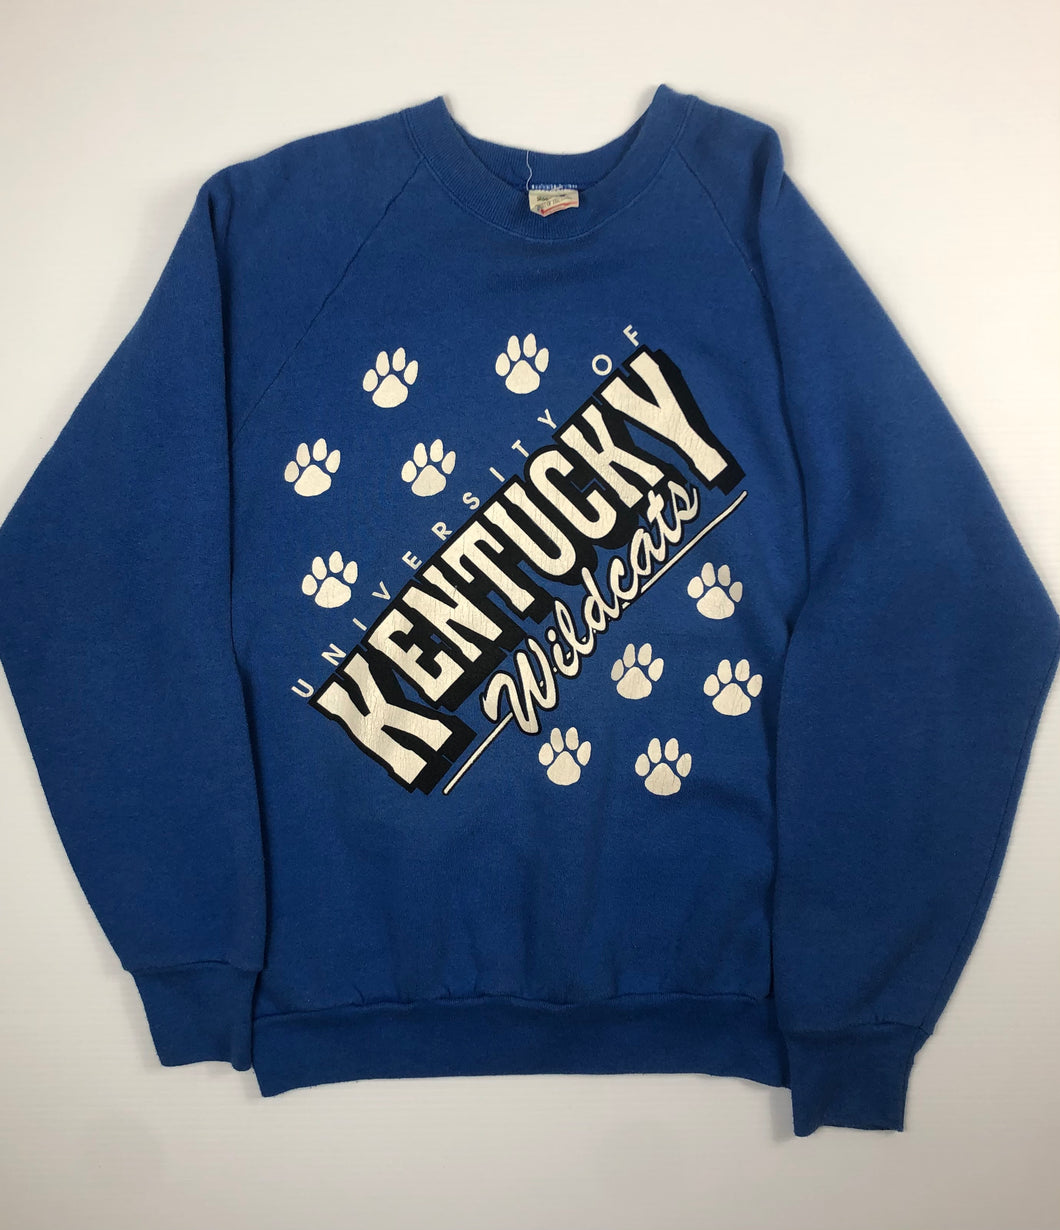 Vintage University of Kentucky Wildcats sweatshirt size L